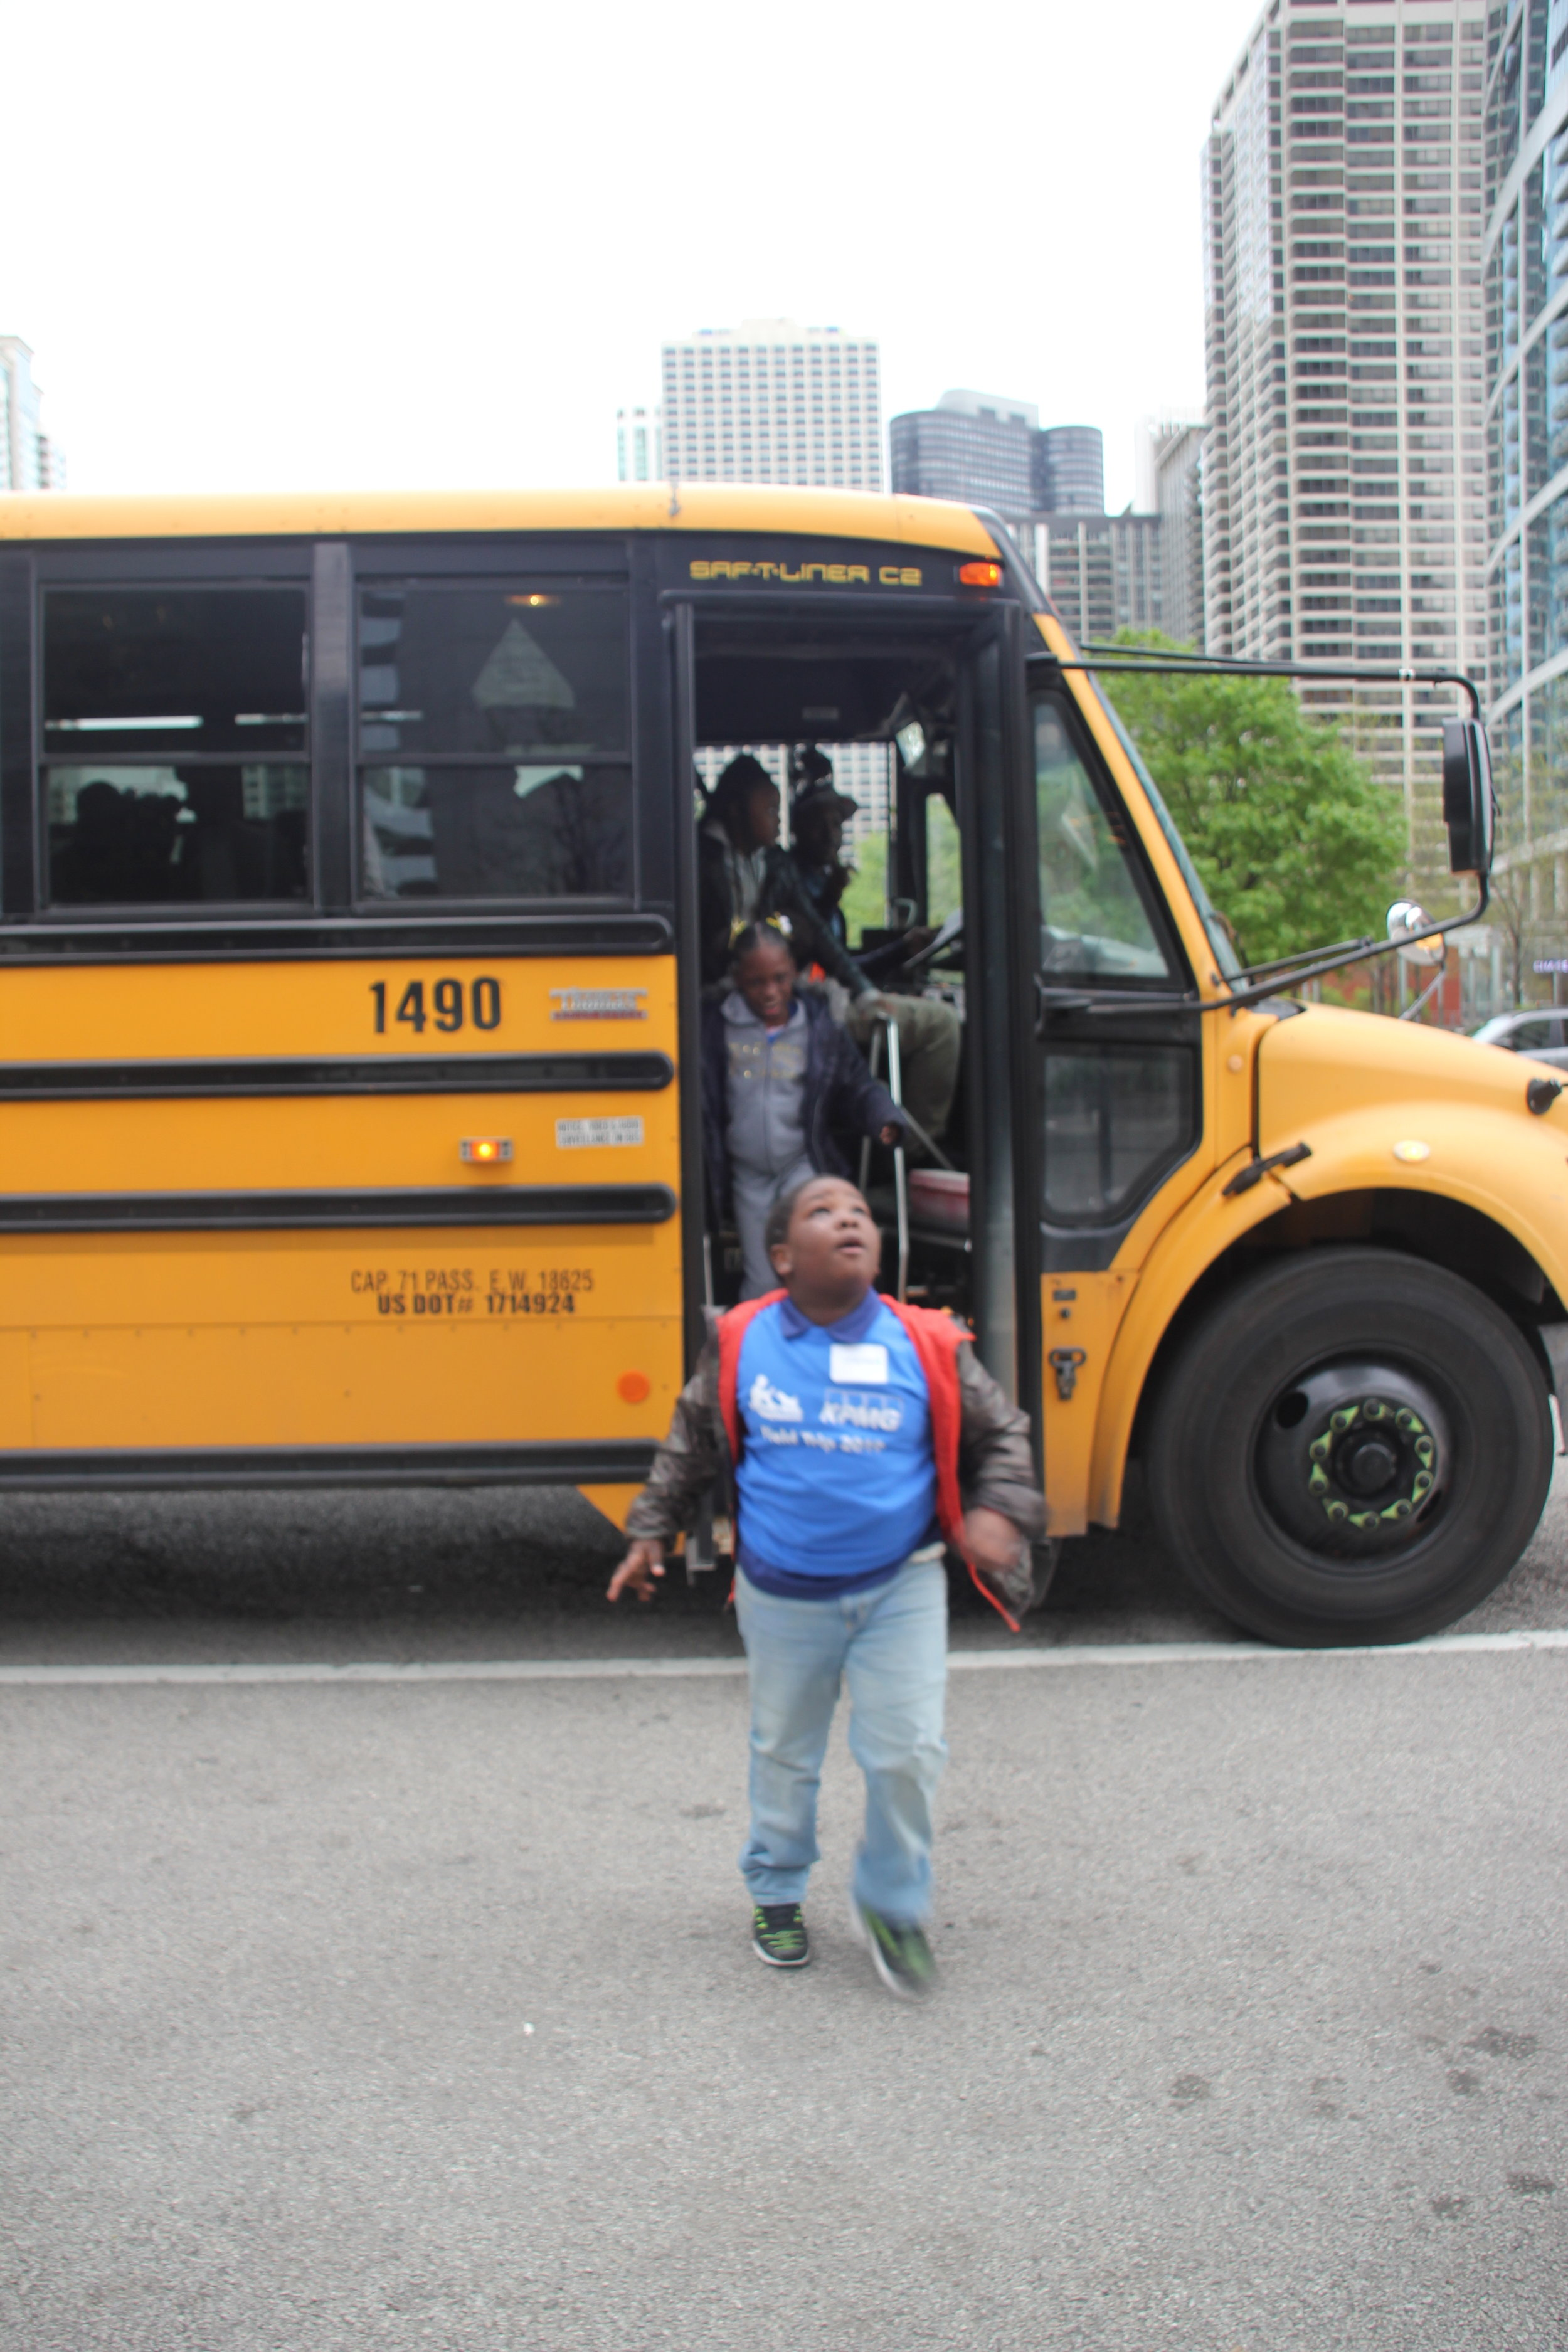 Second-grader Johantes steps off the bus and looks up at the Aon Center, the location of the KPMG offices and their SitStayRead field trip. (M. O'Brien)